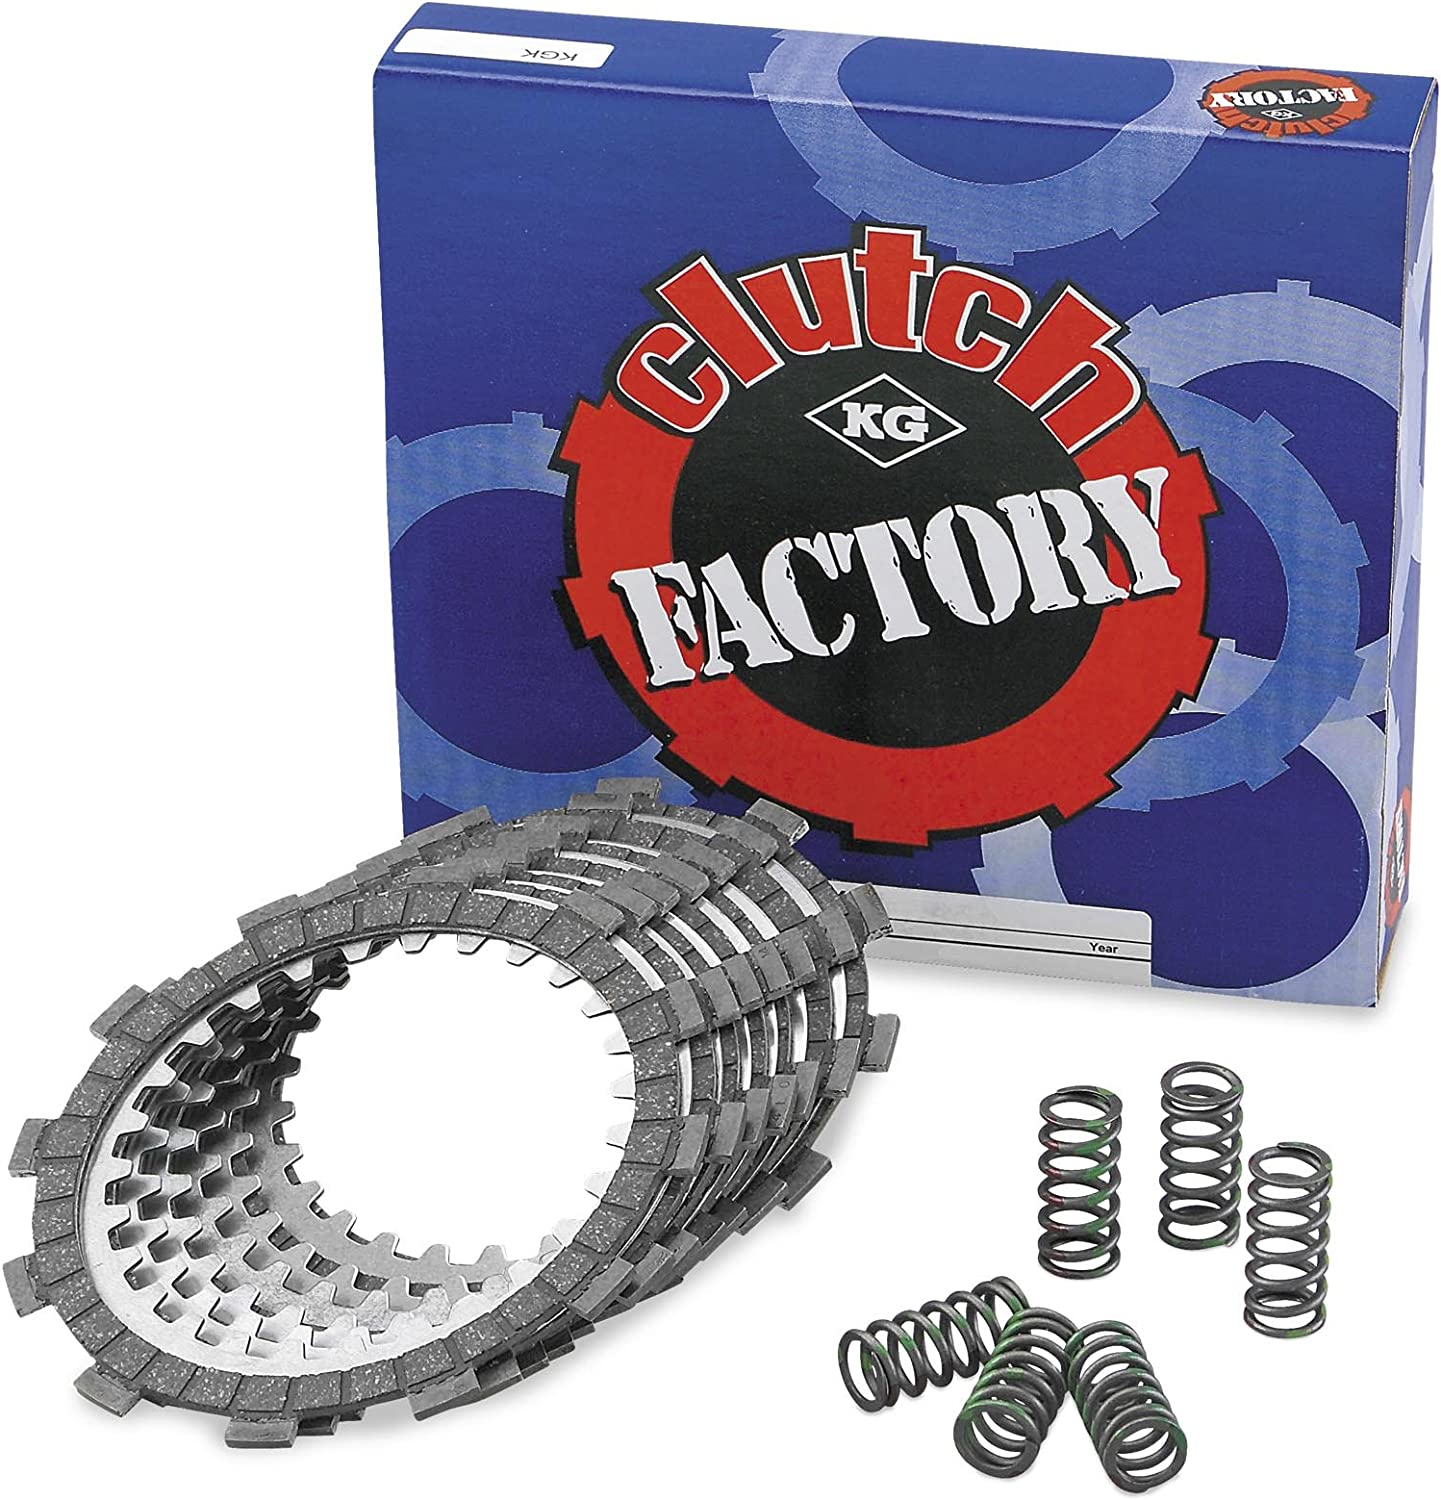 KG Clutch Factory Complete Kit for Kawasaki KLX450R 09